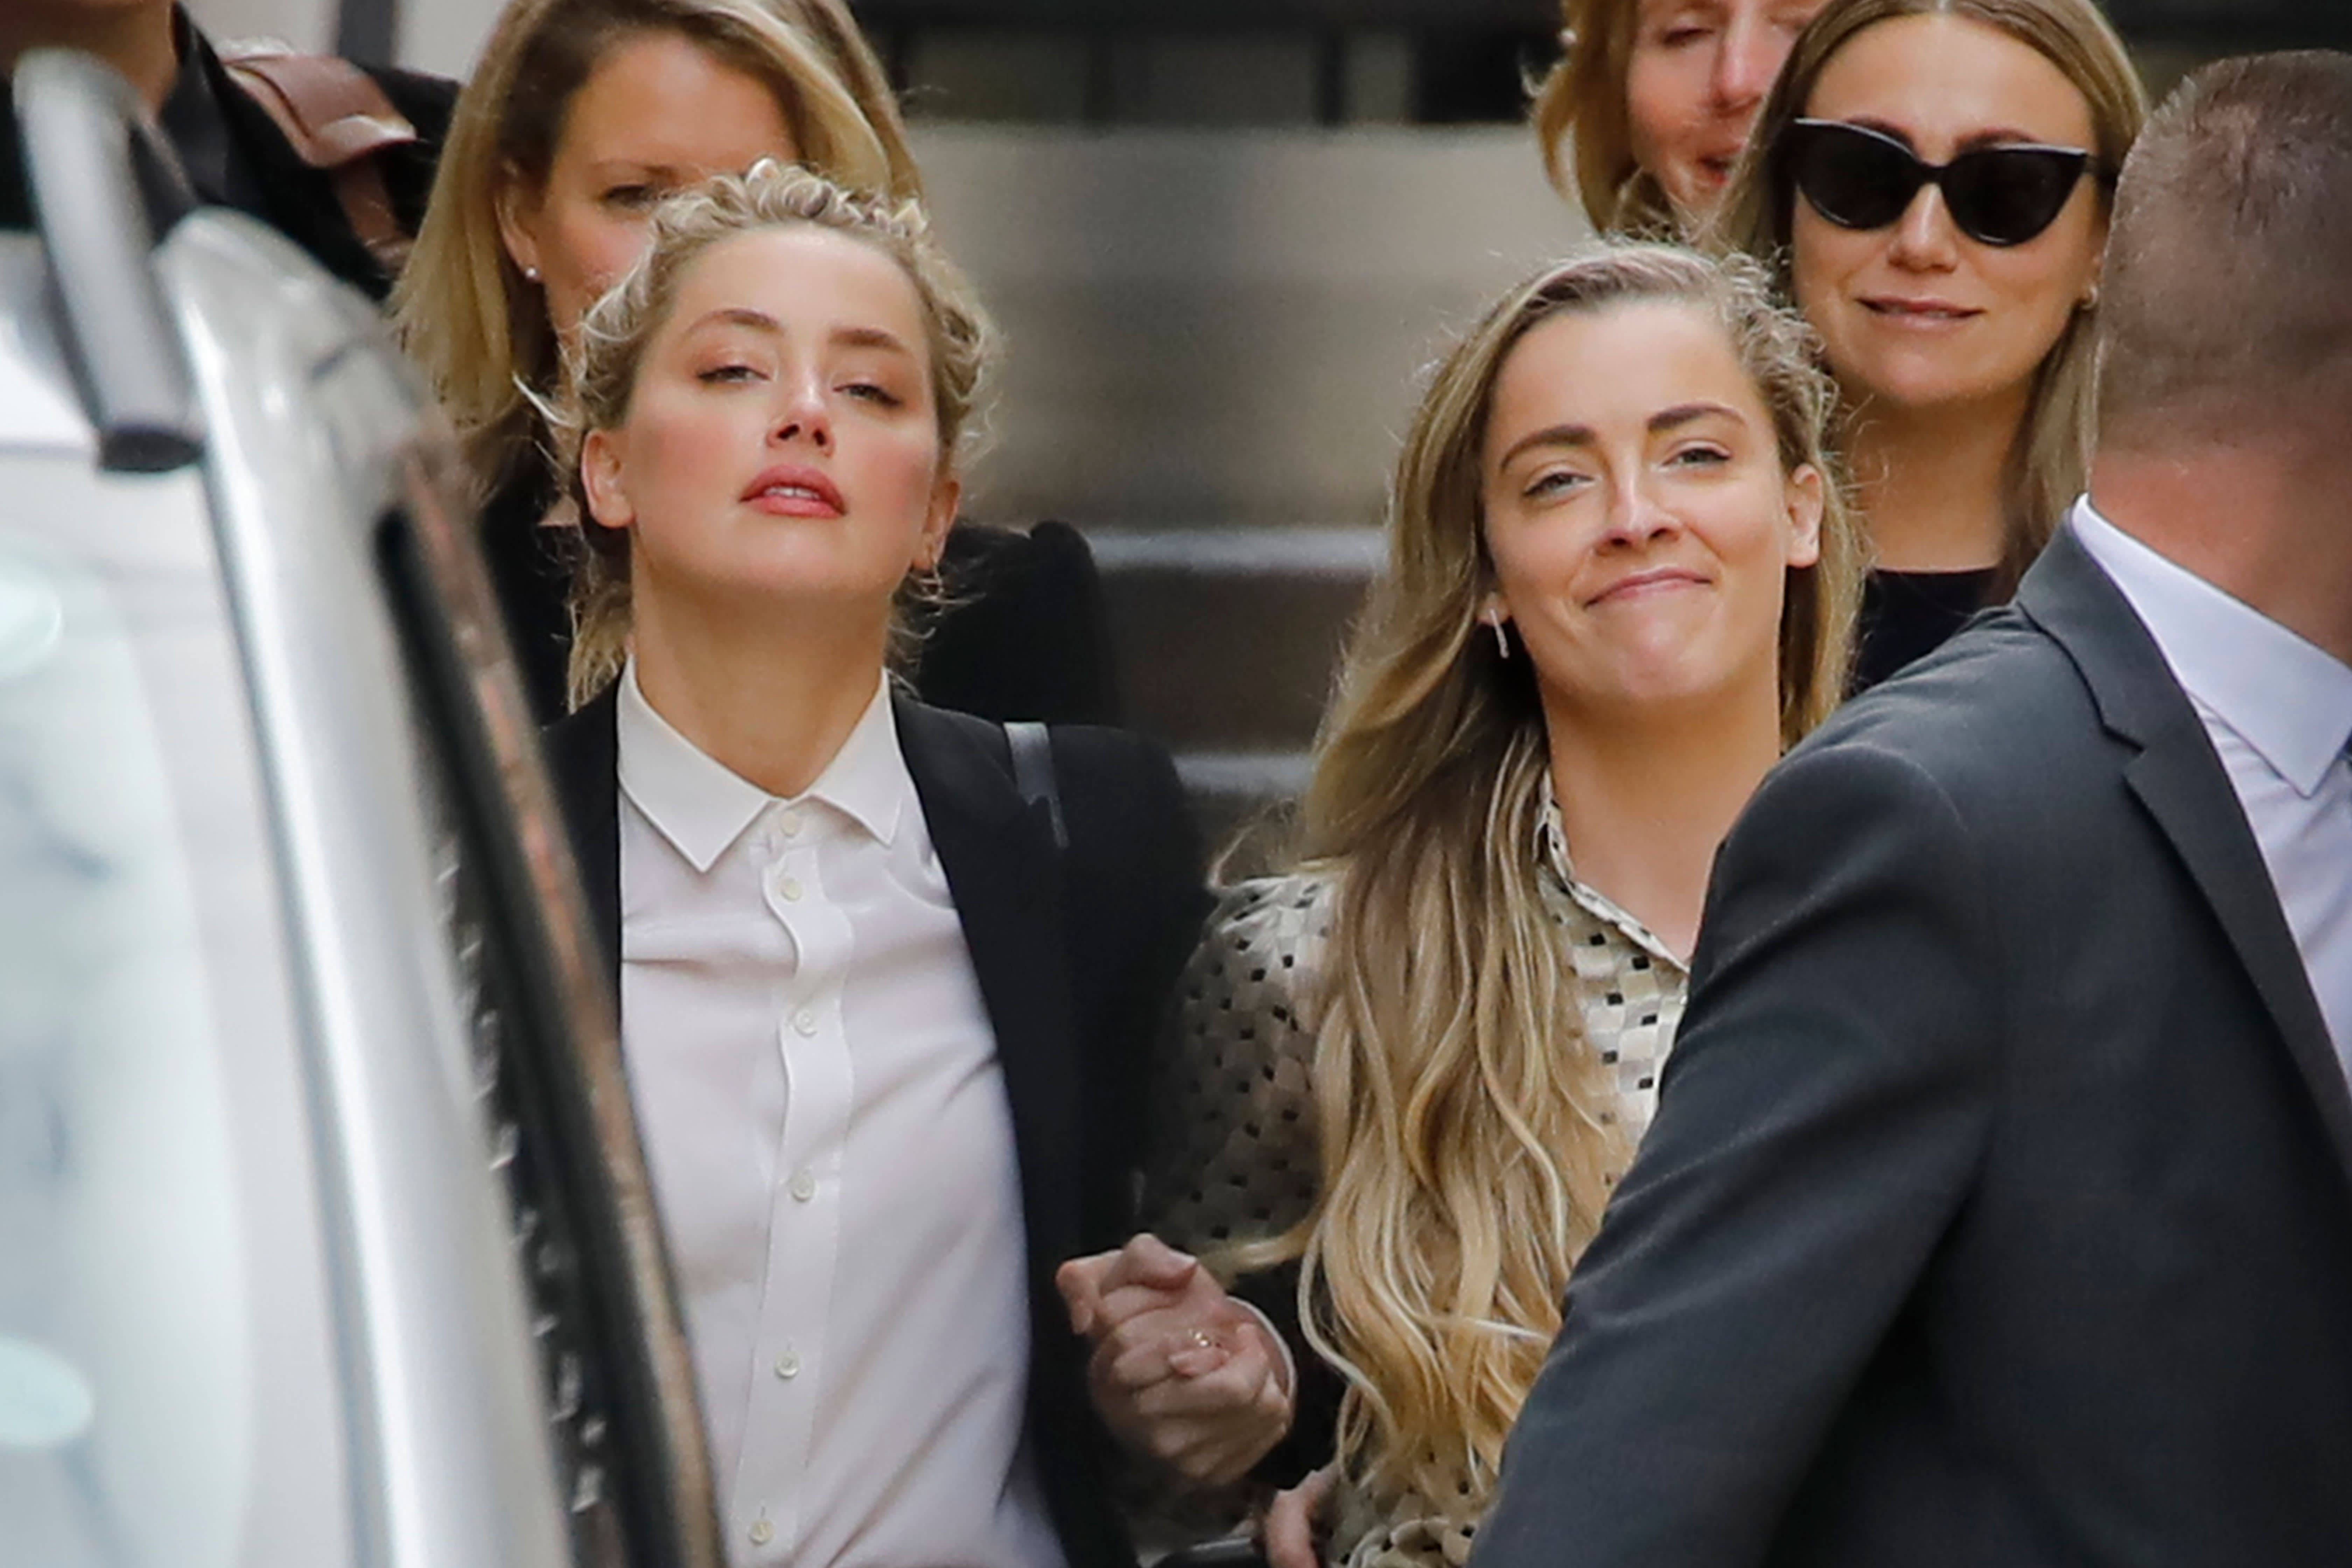 """TOPSHOT - US actress Amber Heard (L) leaves hand-in-hand with her sister Whitney Heard (R) from the High Court after a hearing in the libel trial by her former husband US actor Johnny Depp against News Group Newspapers (NGN) in London, on July 24, 2020. - Depp is suing the publishers of The Sun and the author of the article for the claims that called him a """"wife-beater"""" in April 2018. (Photo by Tolga AKMEN / AFP) (Photo by TOLGA AKMEN/AFP via Getty Images)"""